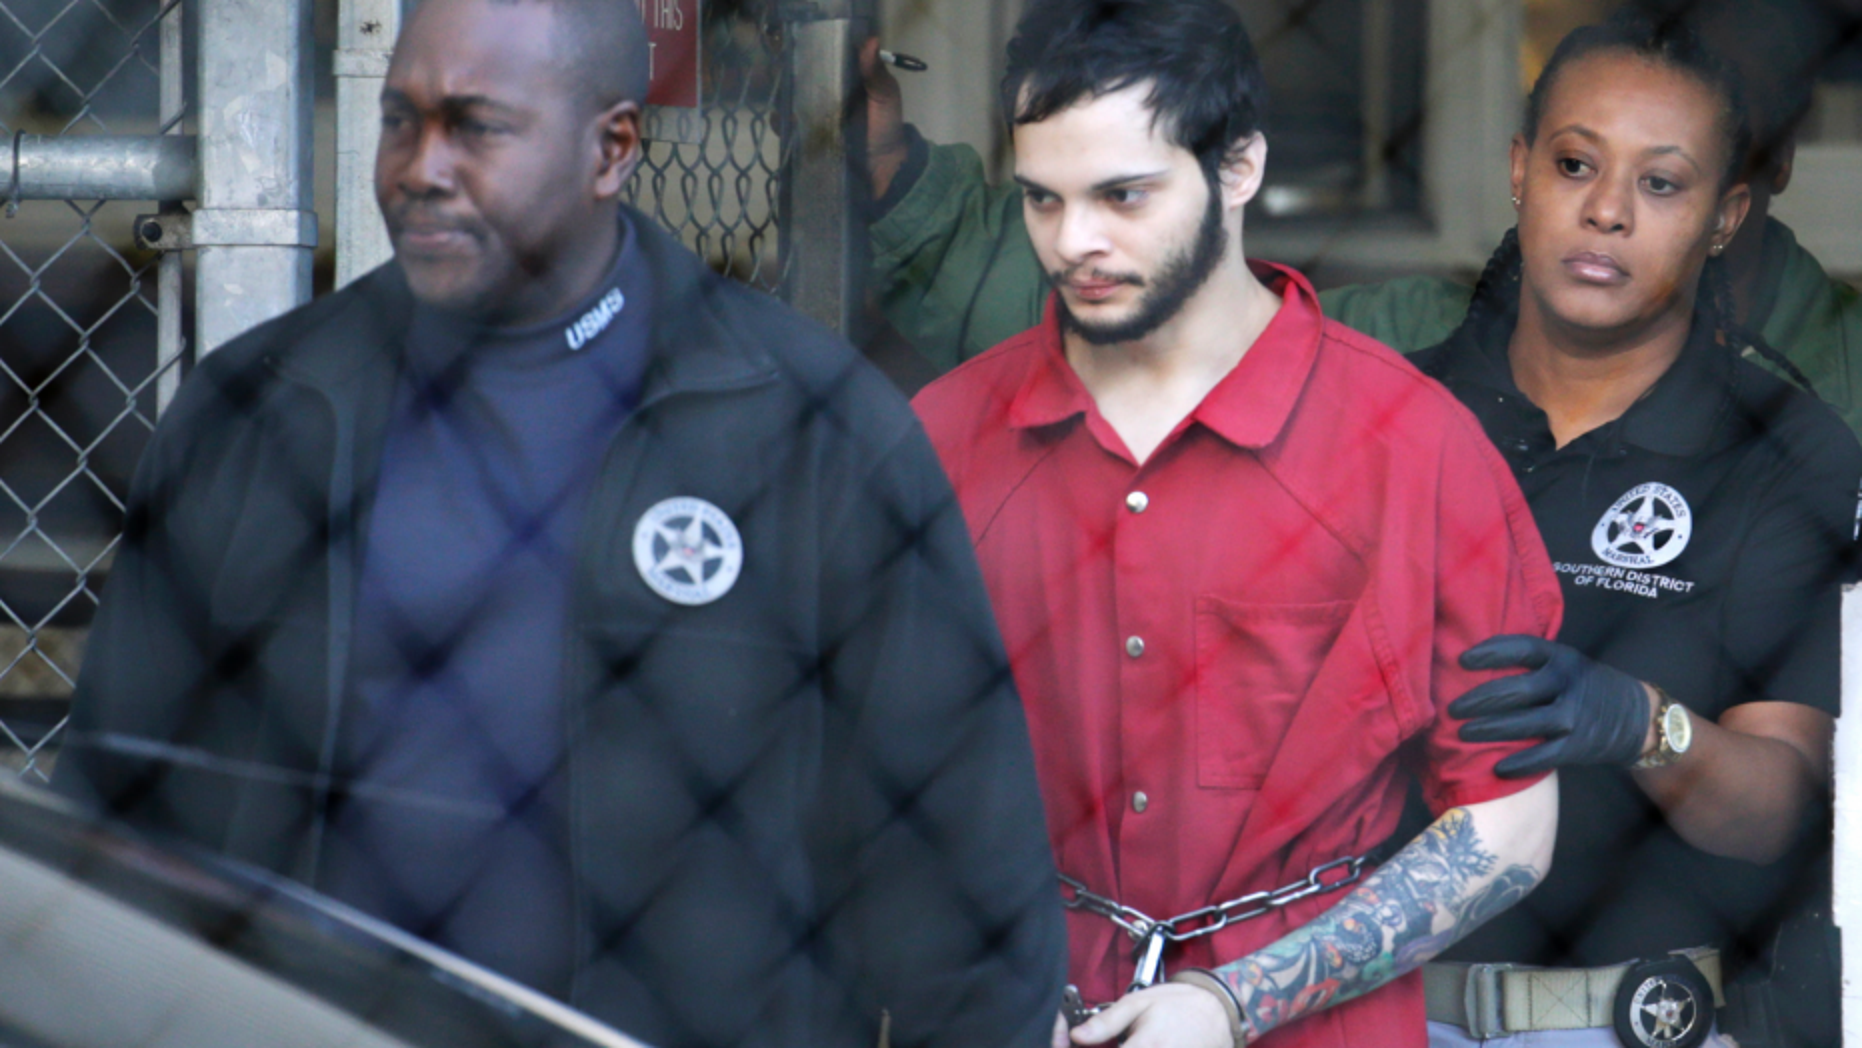 Law enforcement officers escort Esteban Santiago, the suspect in a deadly 2017 shooting at Fort Lauderdale-Hollywood International Airport in Florida.